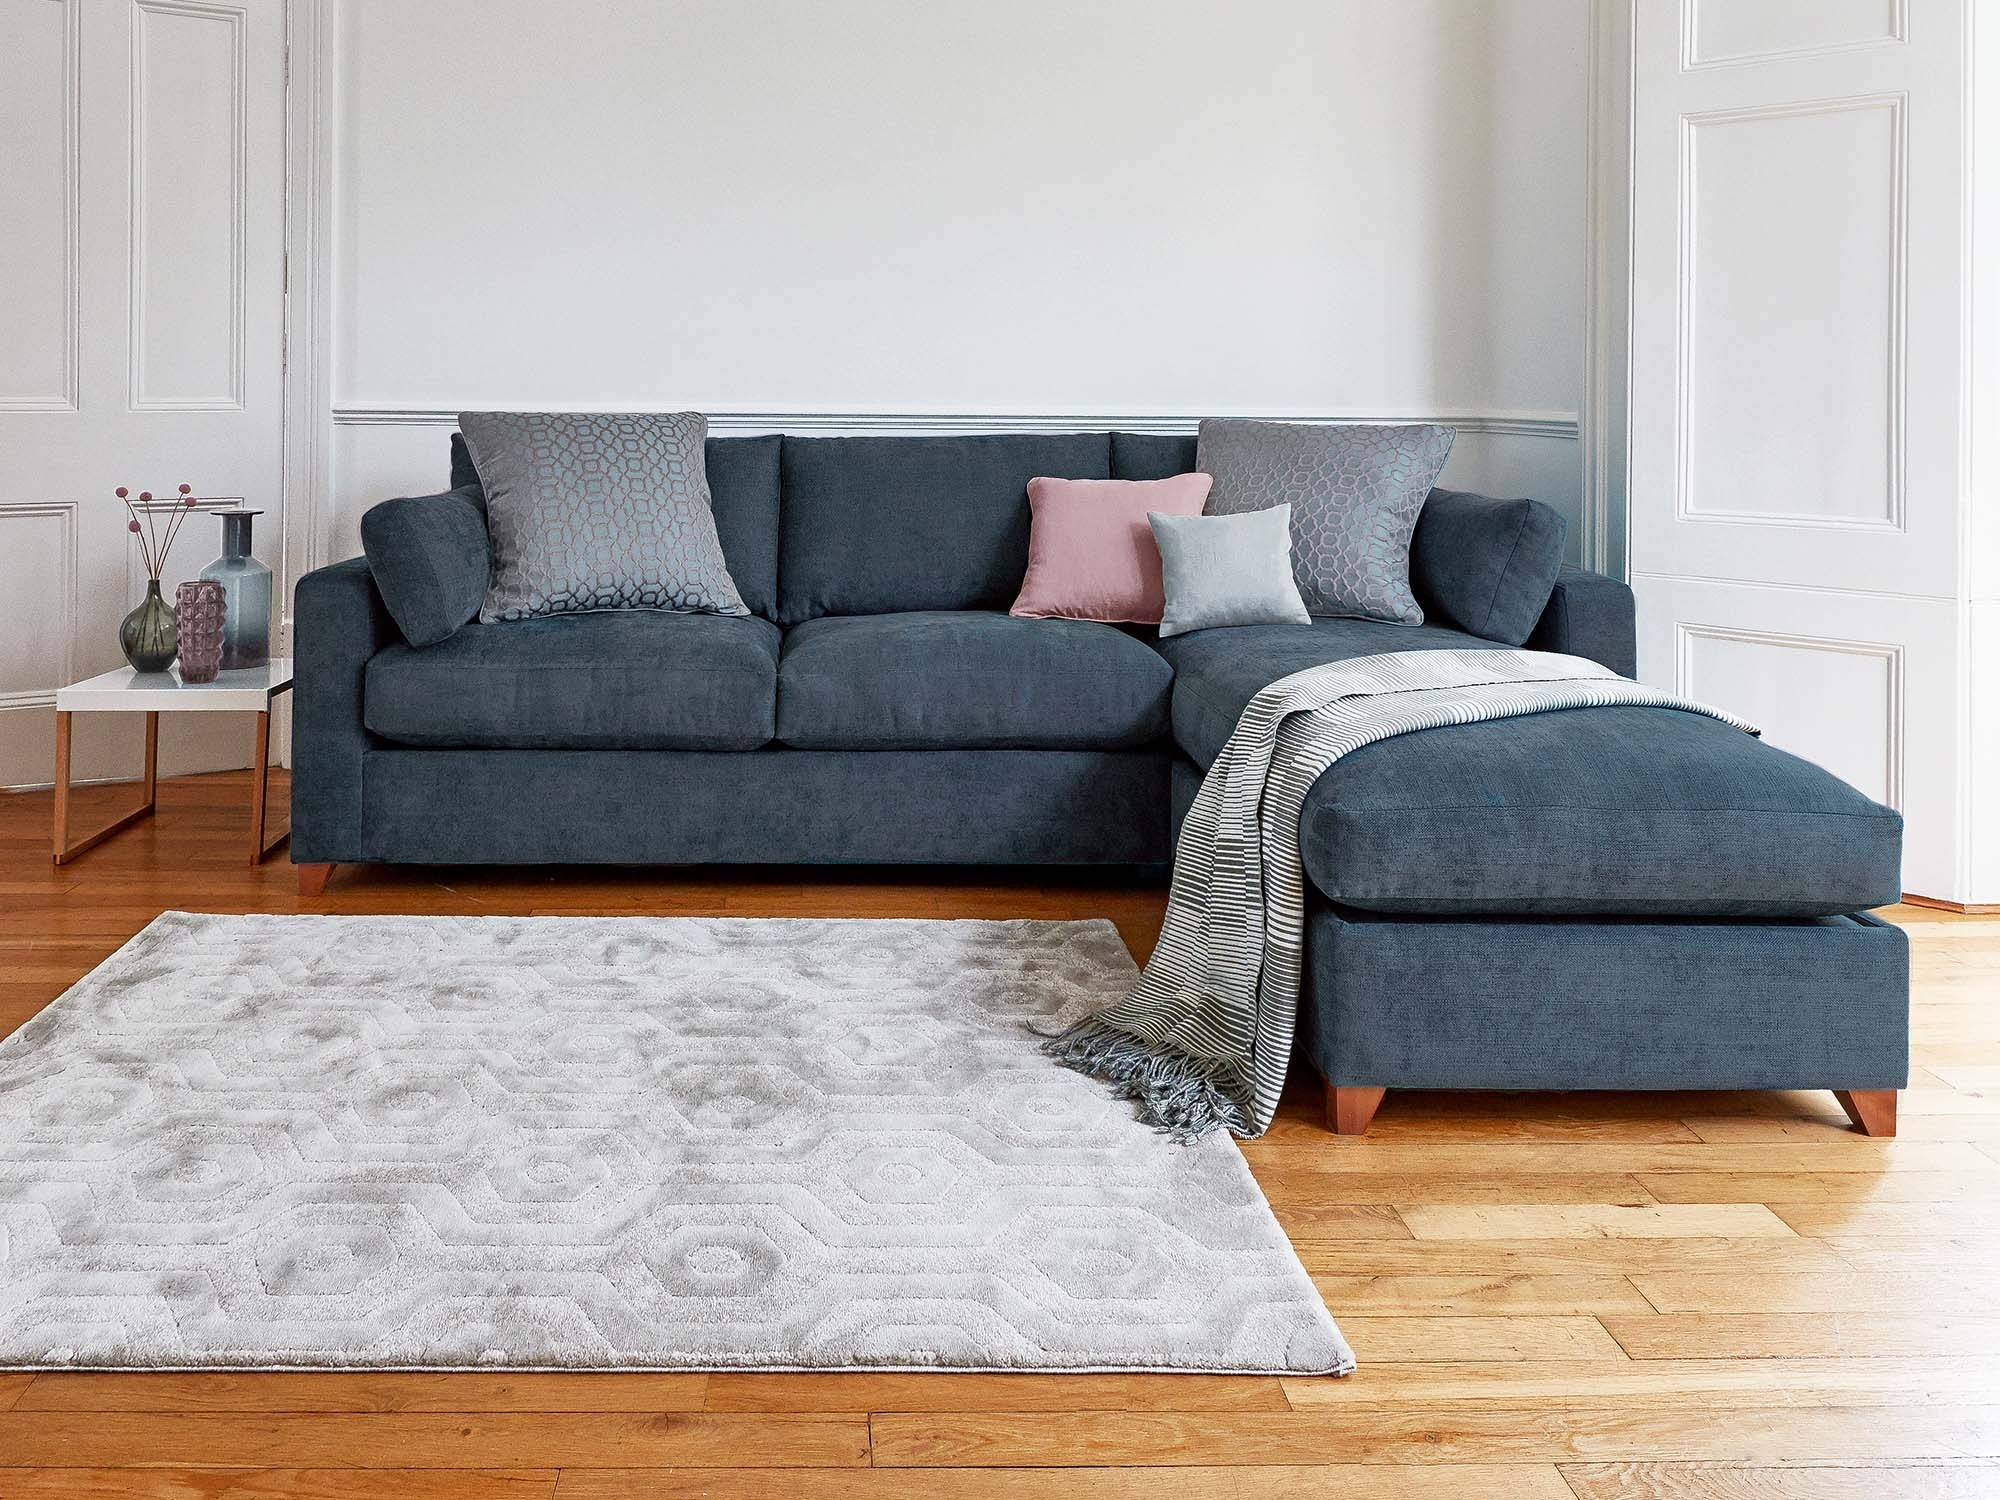 This is how I look in Stain Resistant Linen Cotton French Navy as a right side chaise with siliconized hollow fibre<br> or feather-wrapped foam seat cushions